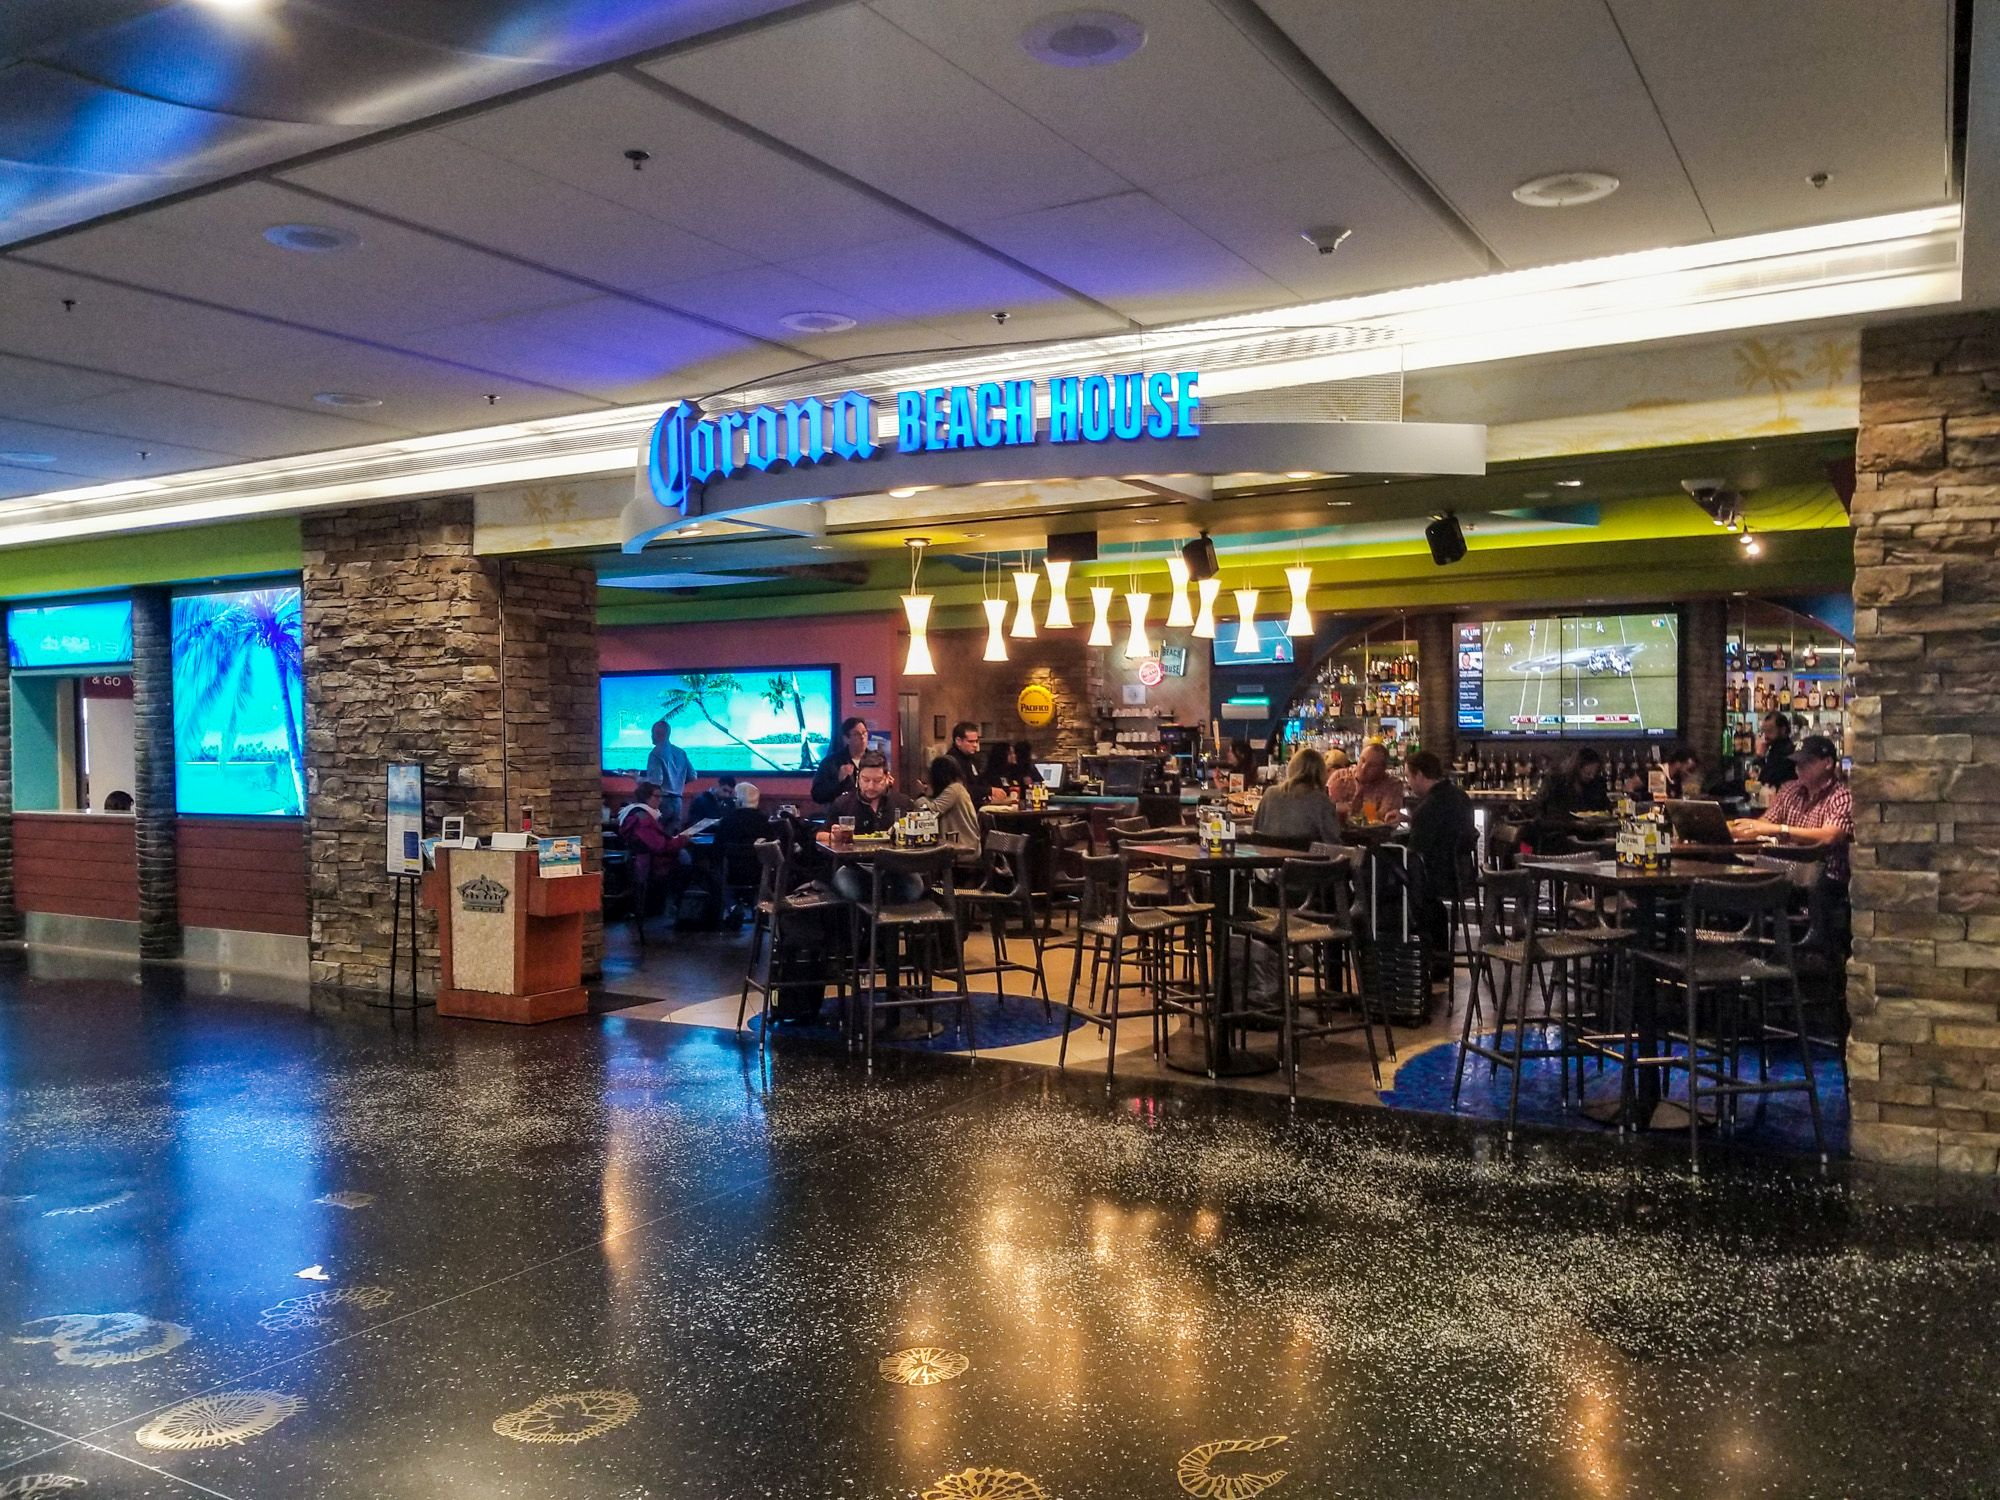 Lounge Review: Corona Beach House at Miami International Airport (MIA)